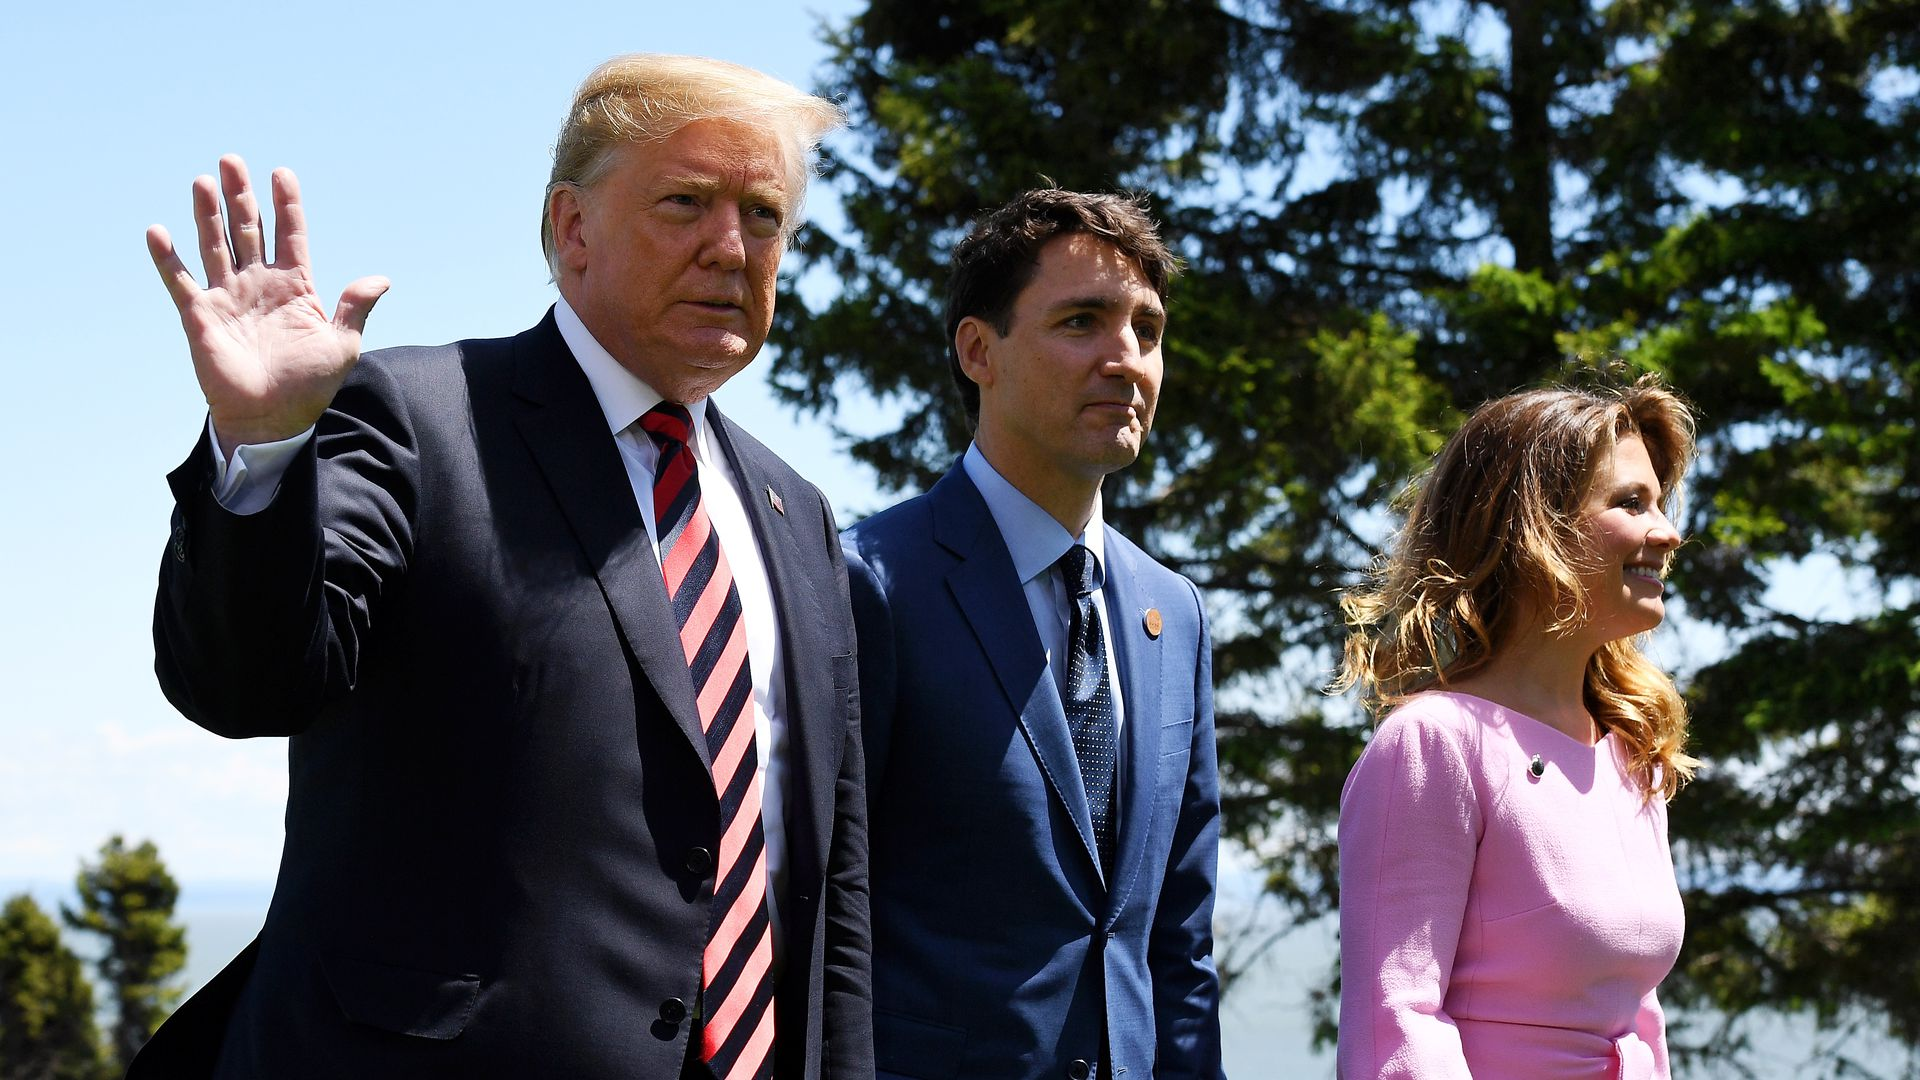 Prime Minister of Canada Justin Trudeau and wife Sophie Gregoire greet President Trump during the G7 official welcome on June 8, 2018 in Quebec City.